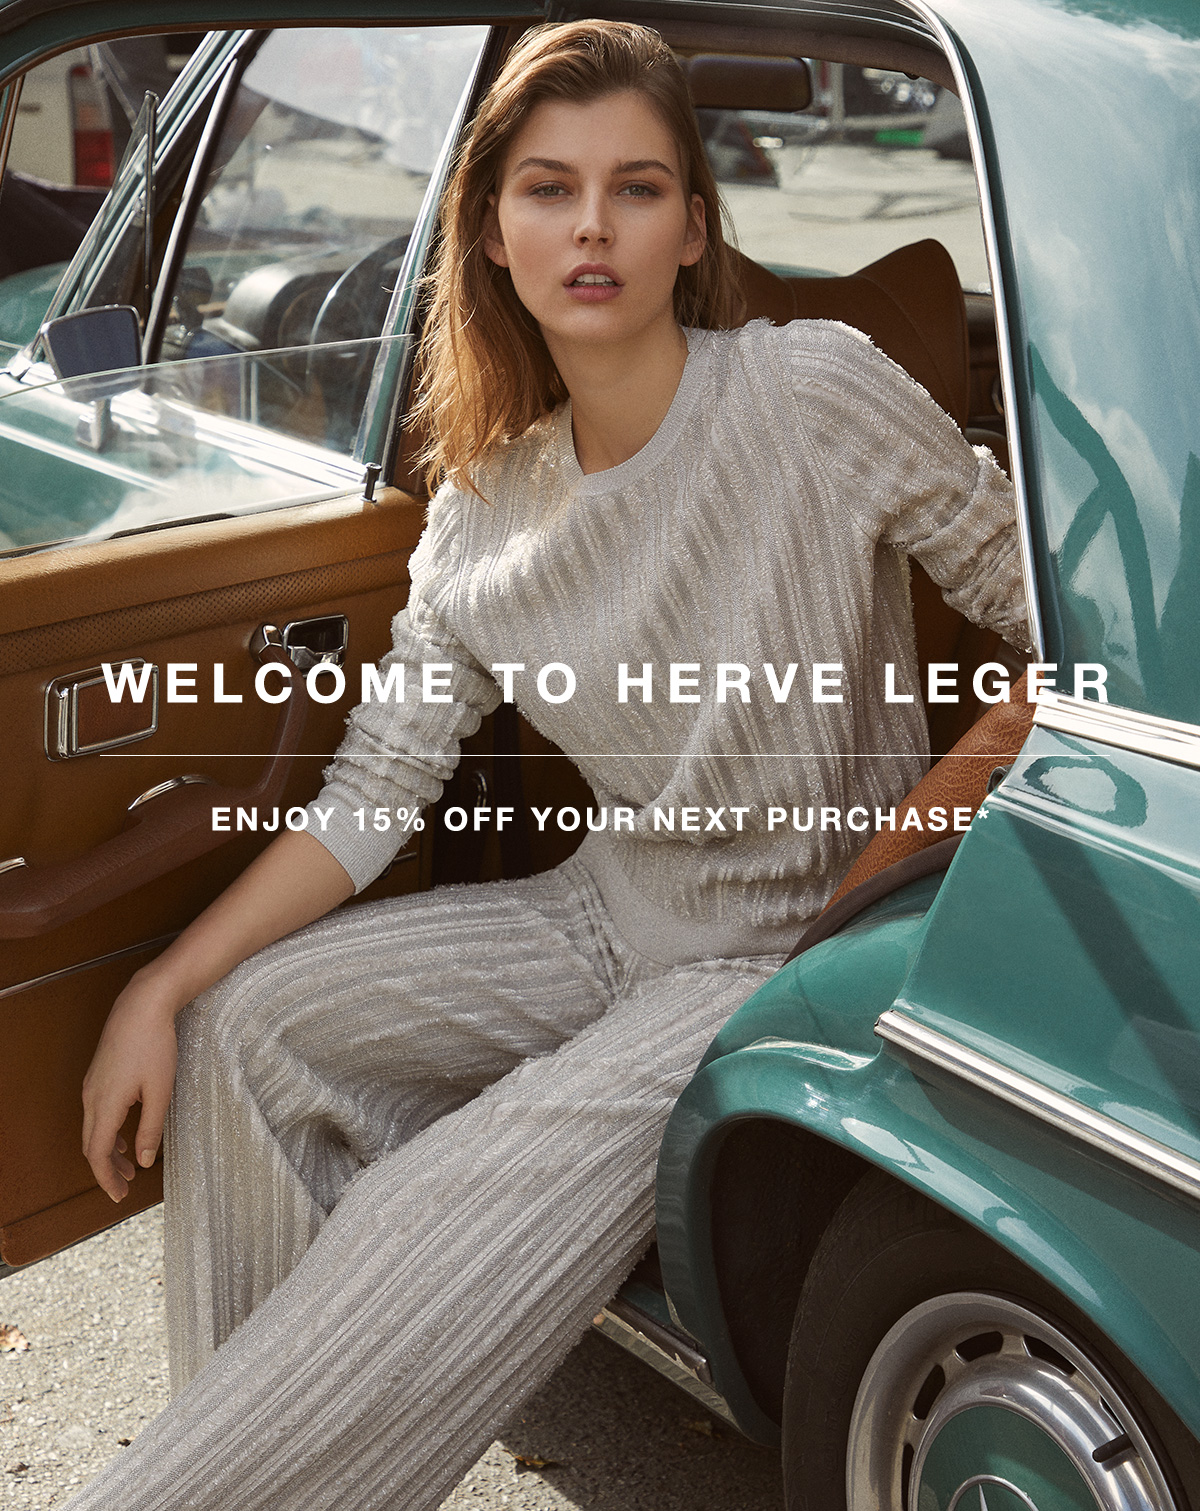 HERVE LEGER WELCOME...